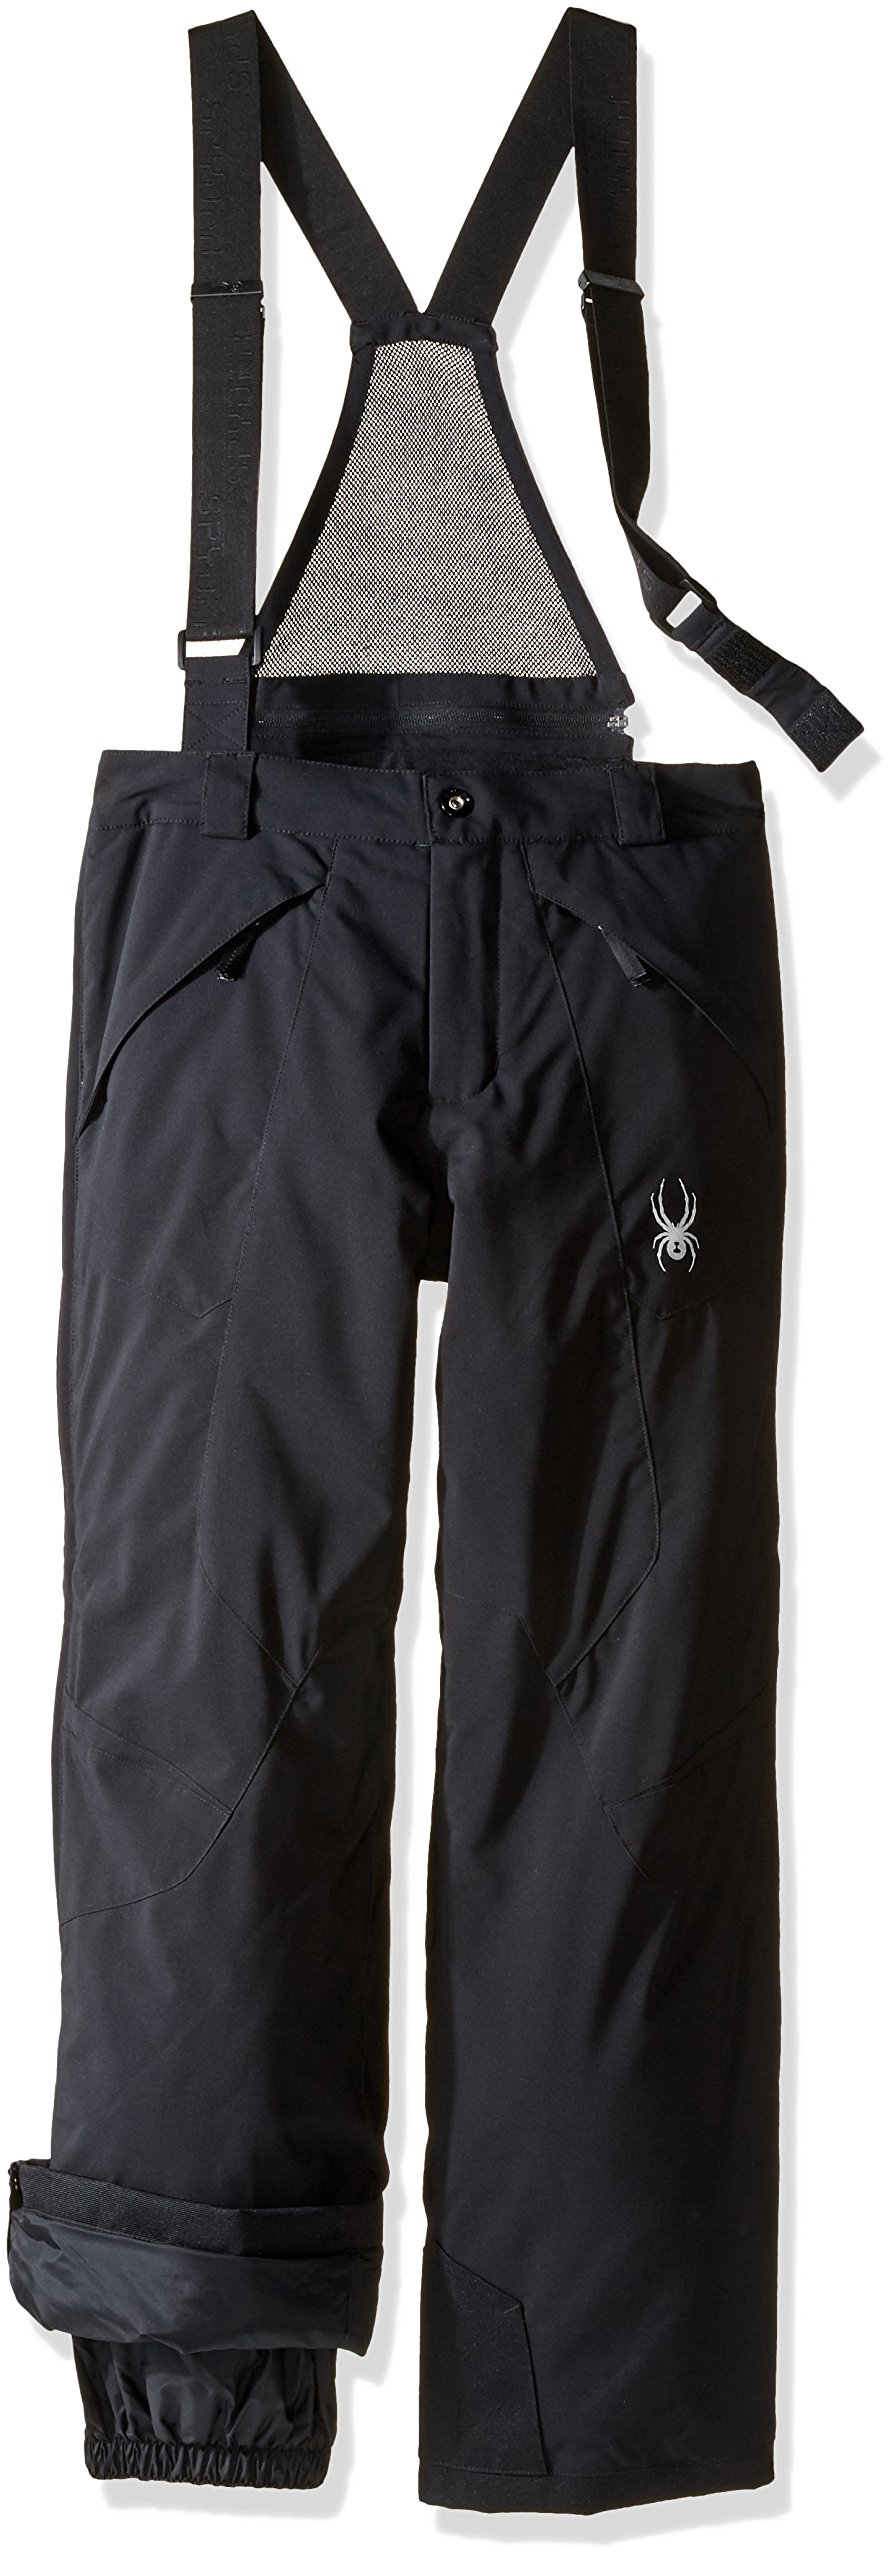 Spyder Boys Force Plus Pants, Size 8, Black